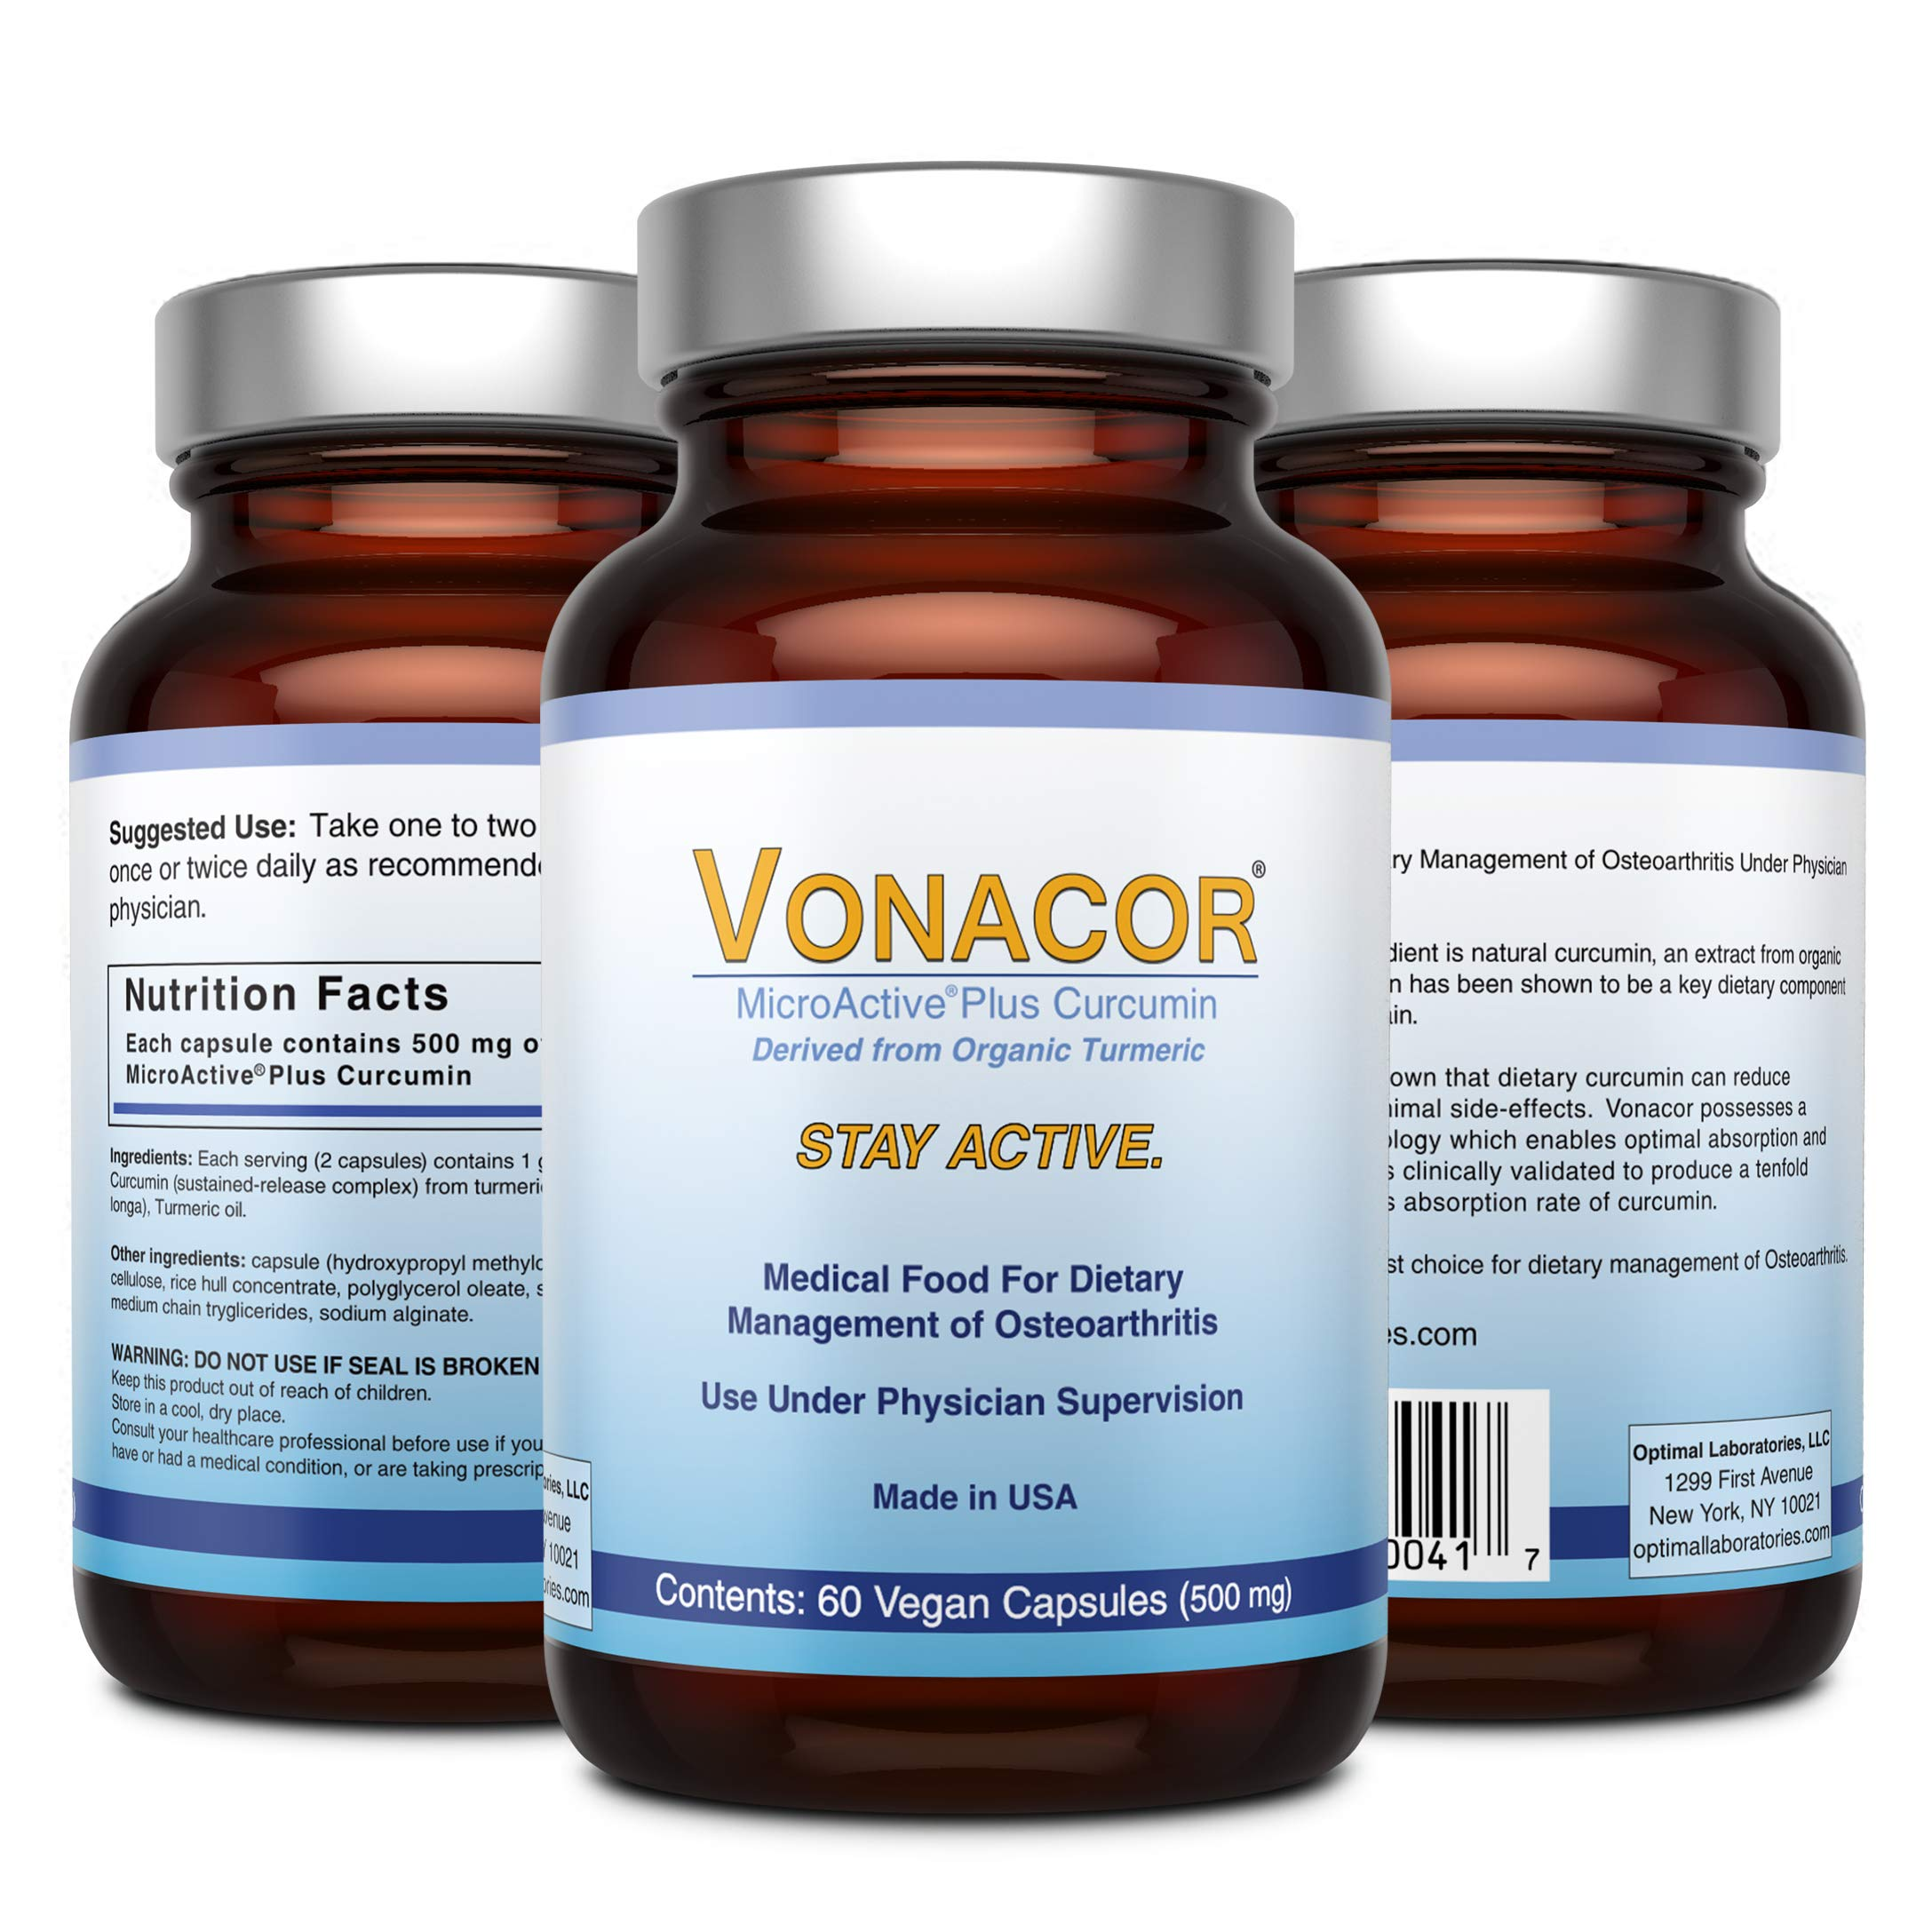 Vonacor Microactive Curcumin by Optimal Laboratories